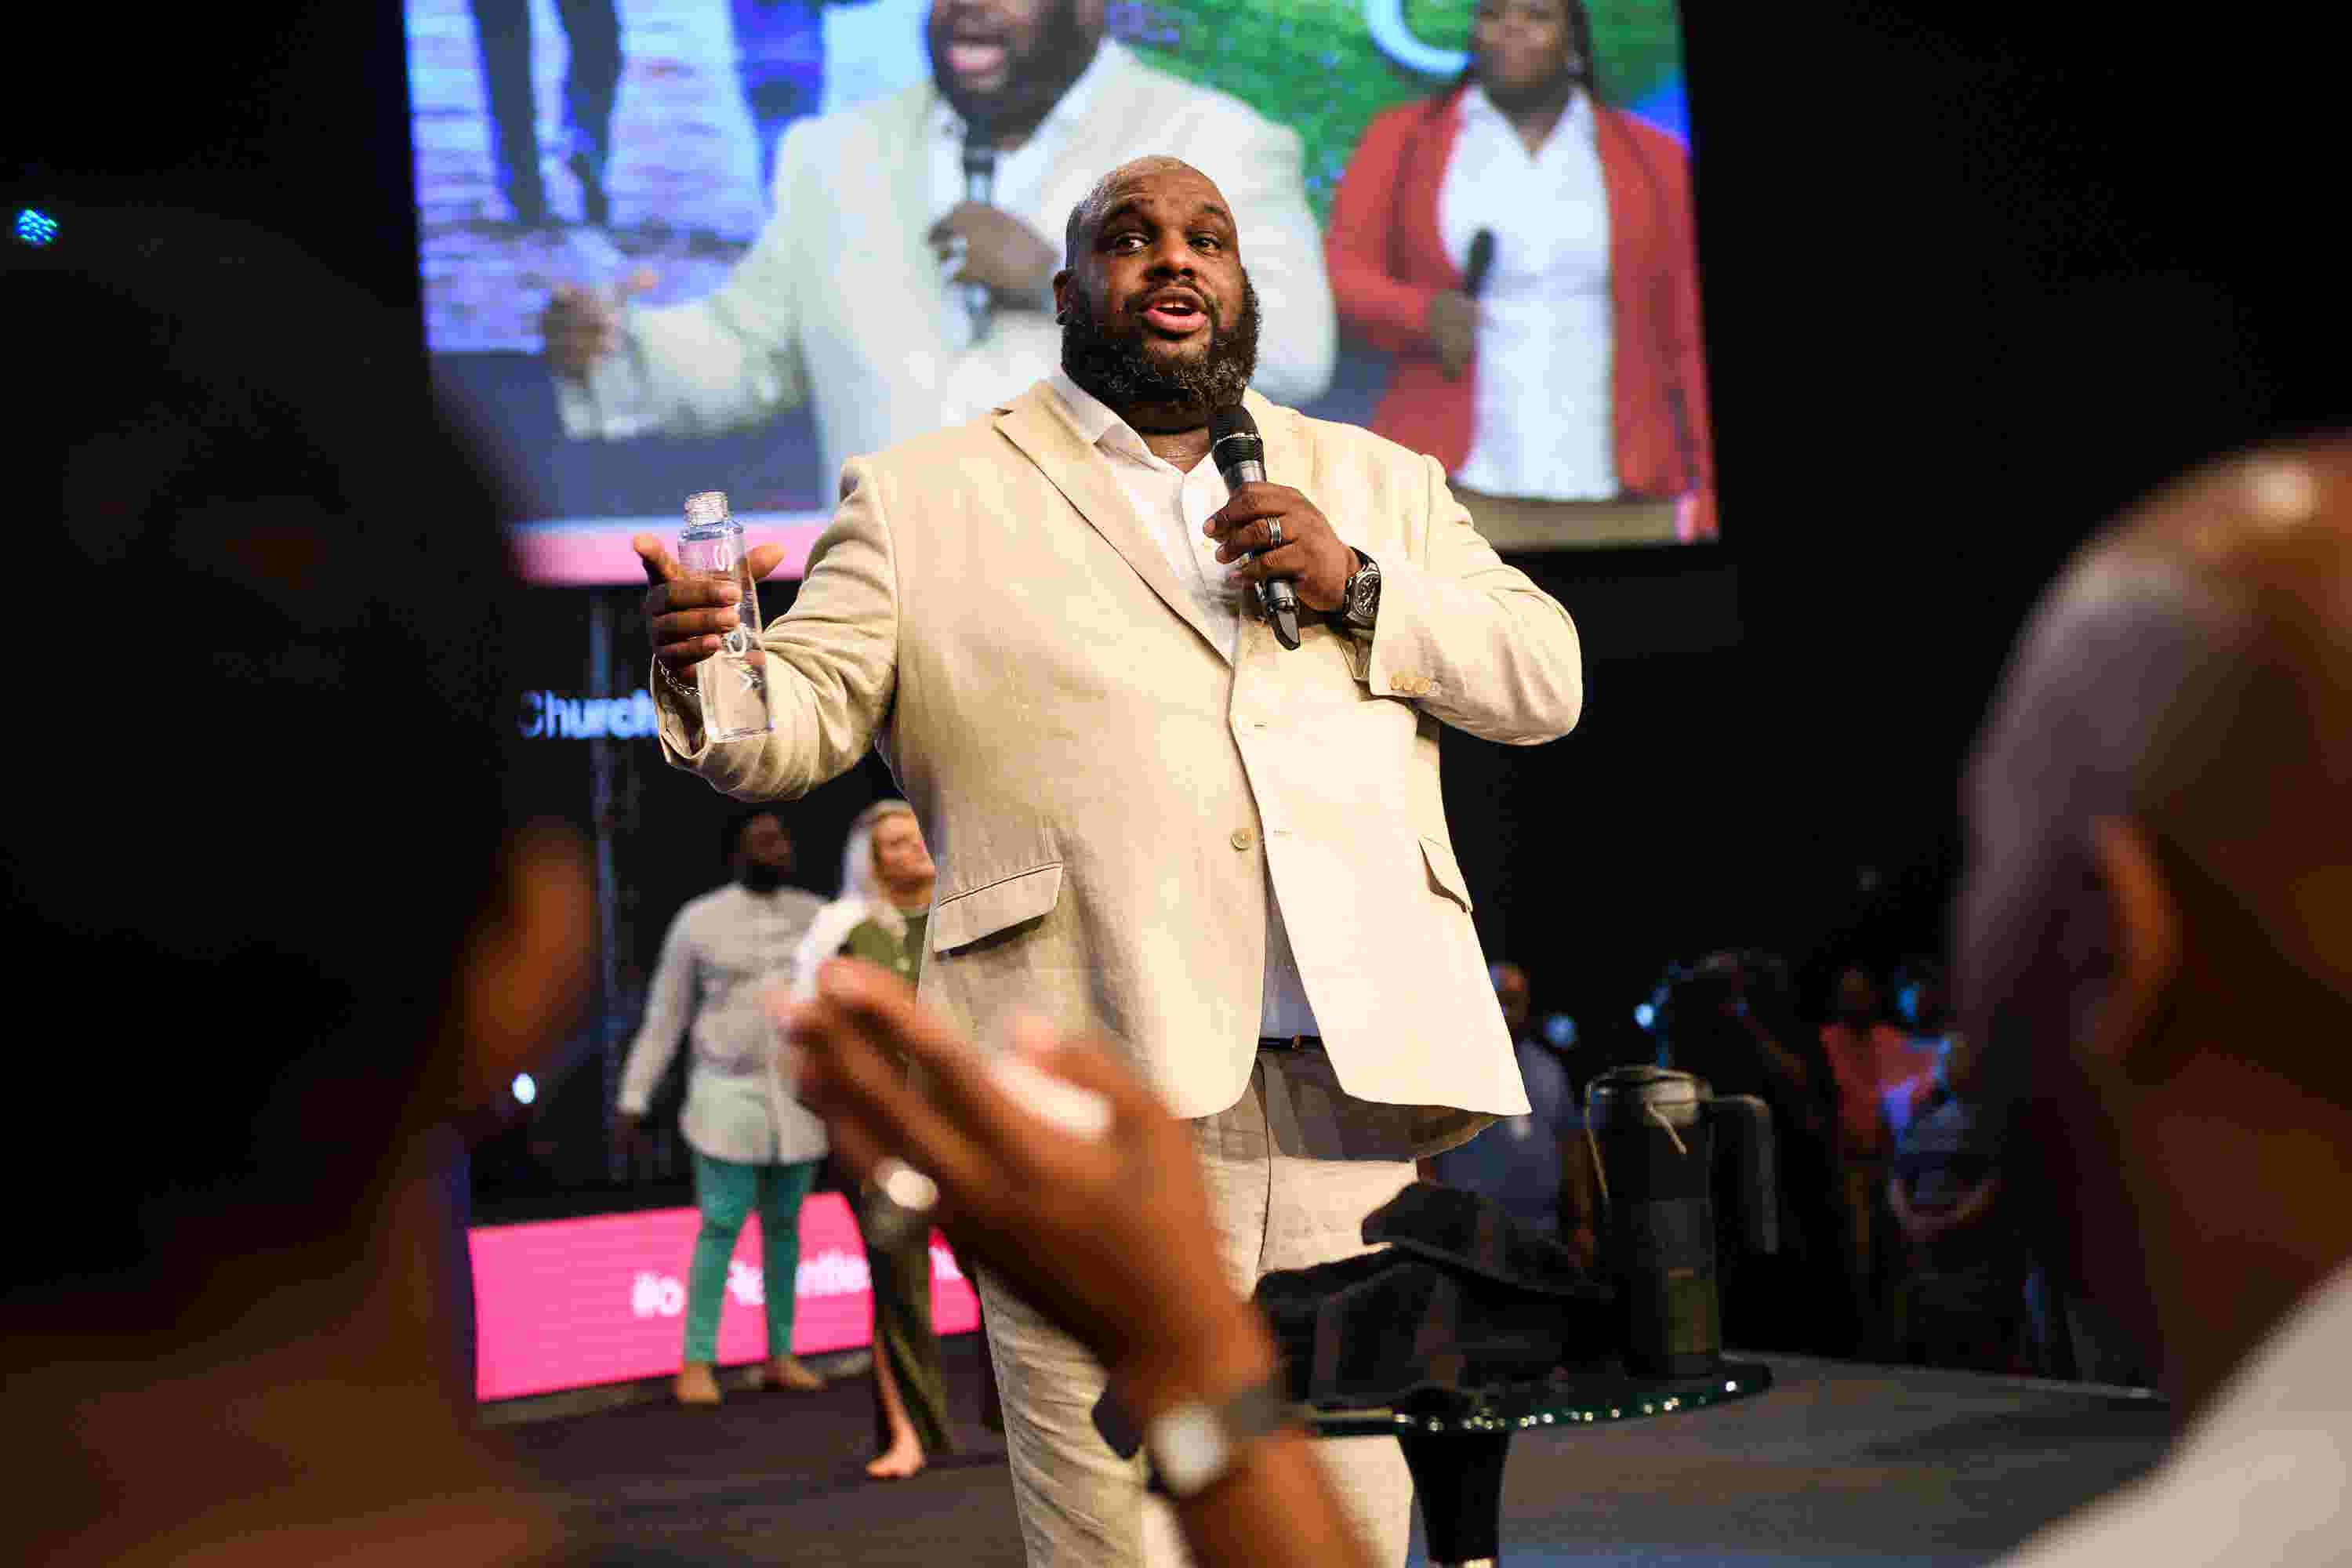 Relentless Church pastor John Gray talks about establishing himself in  Greenville